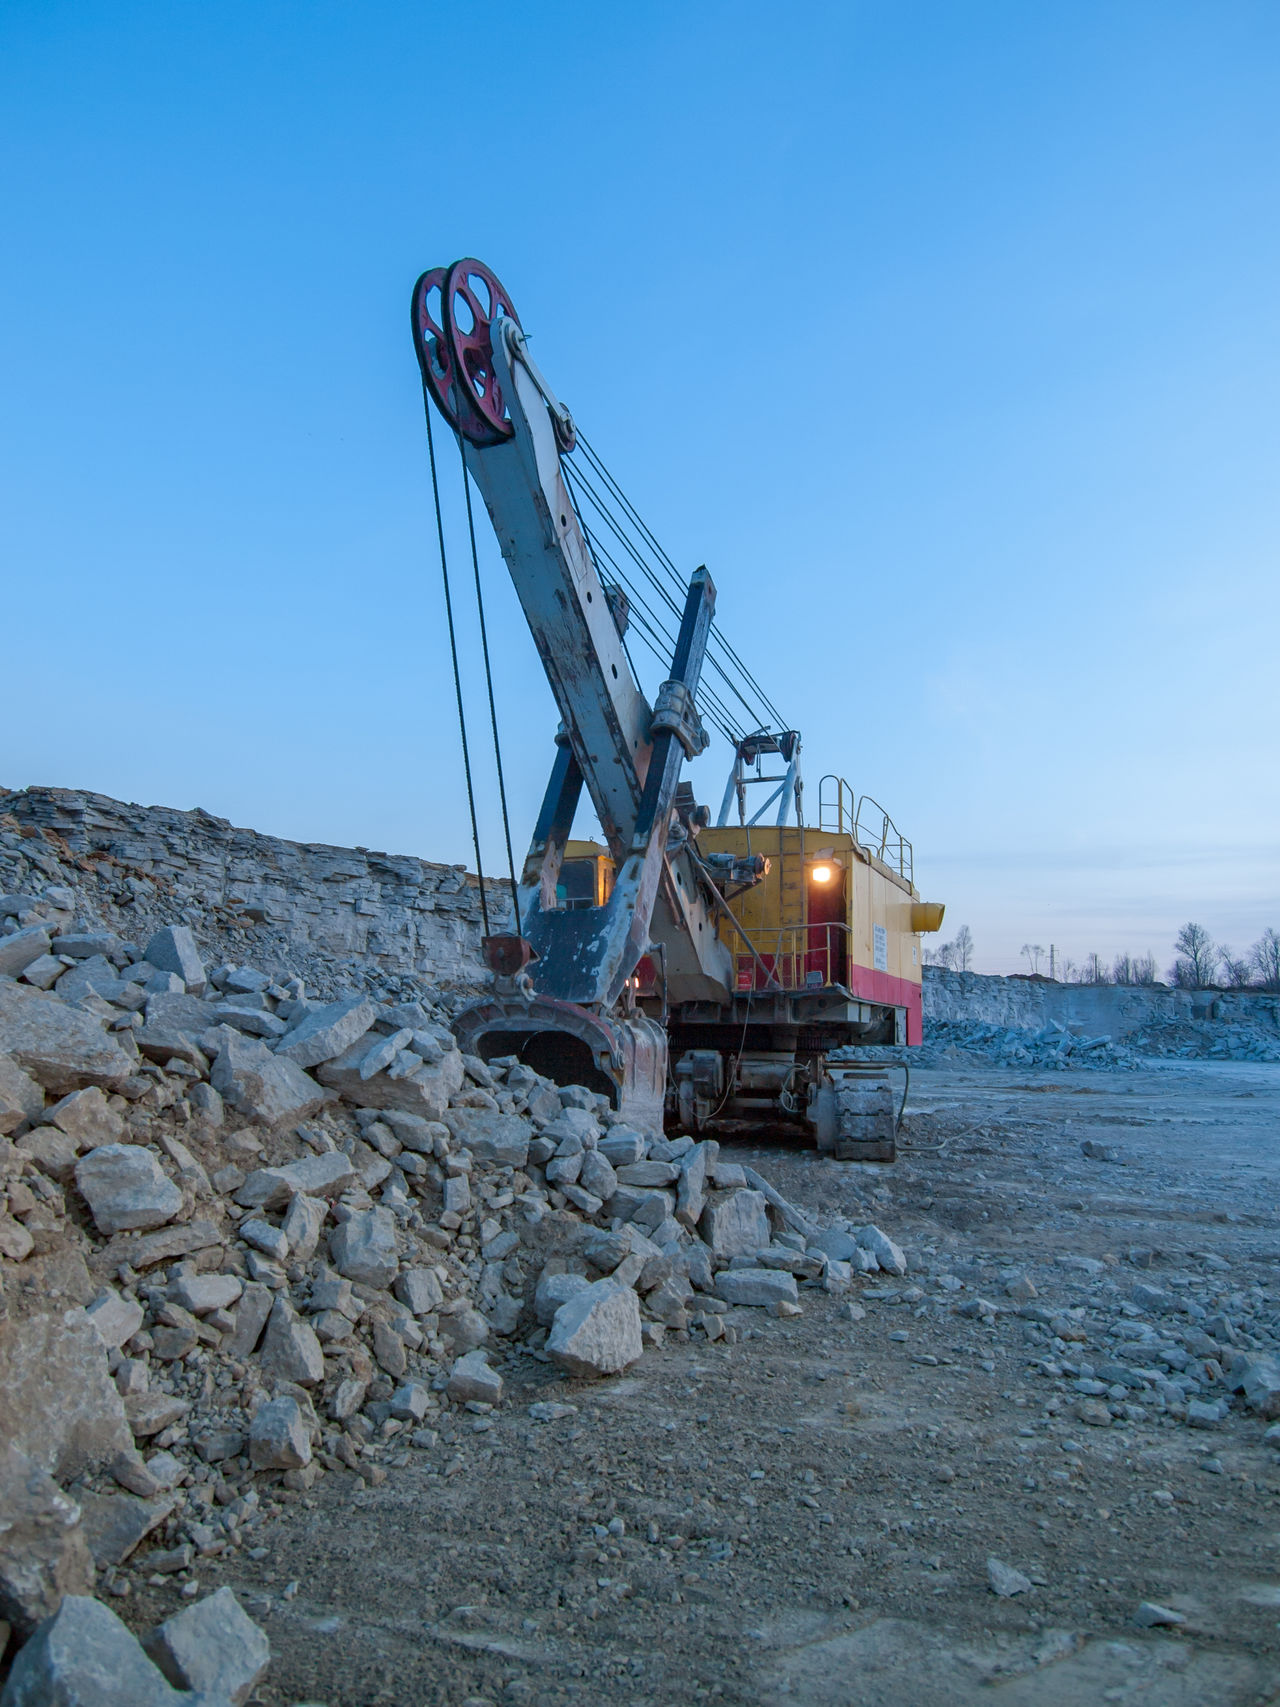 Business Finance And Industry Environment Excavator Industry Large Equip Limestone Limestone Rocks Mechanical Shovel Mini Mining Equipment Mining Machine No People Outdoors Quarry Sky